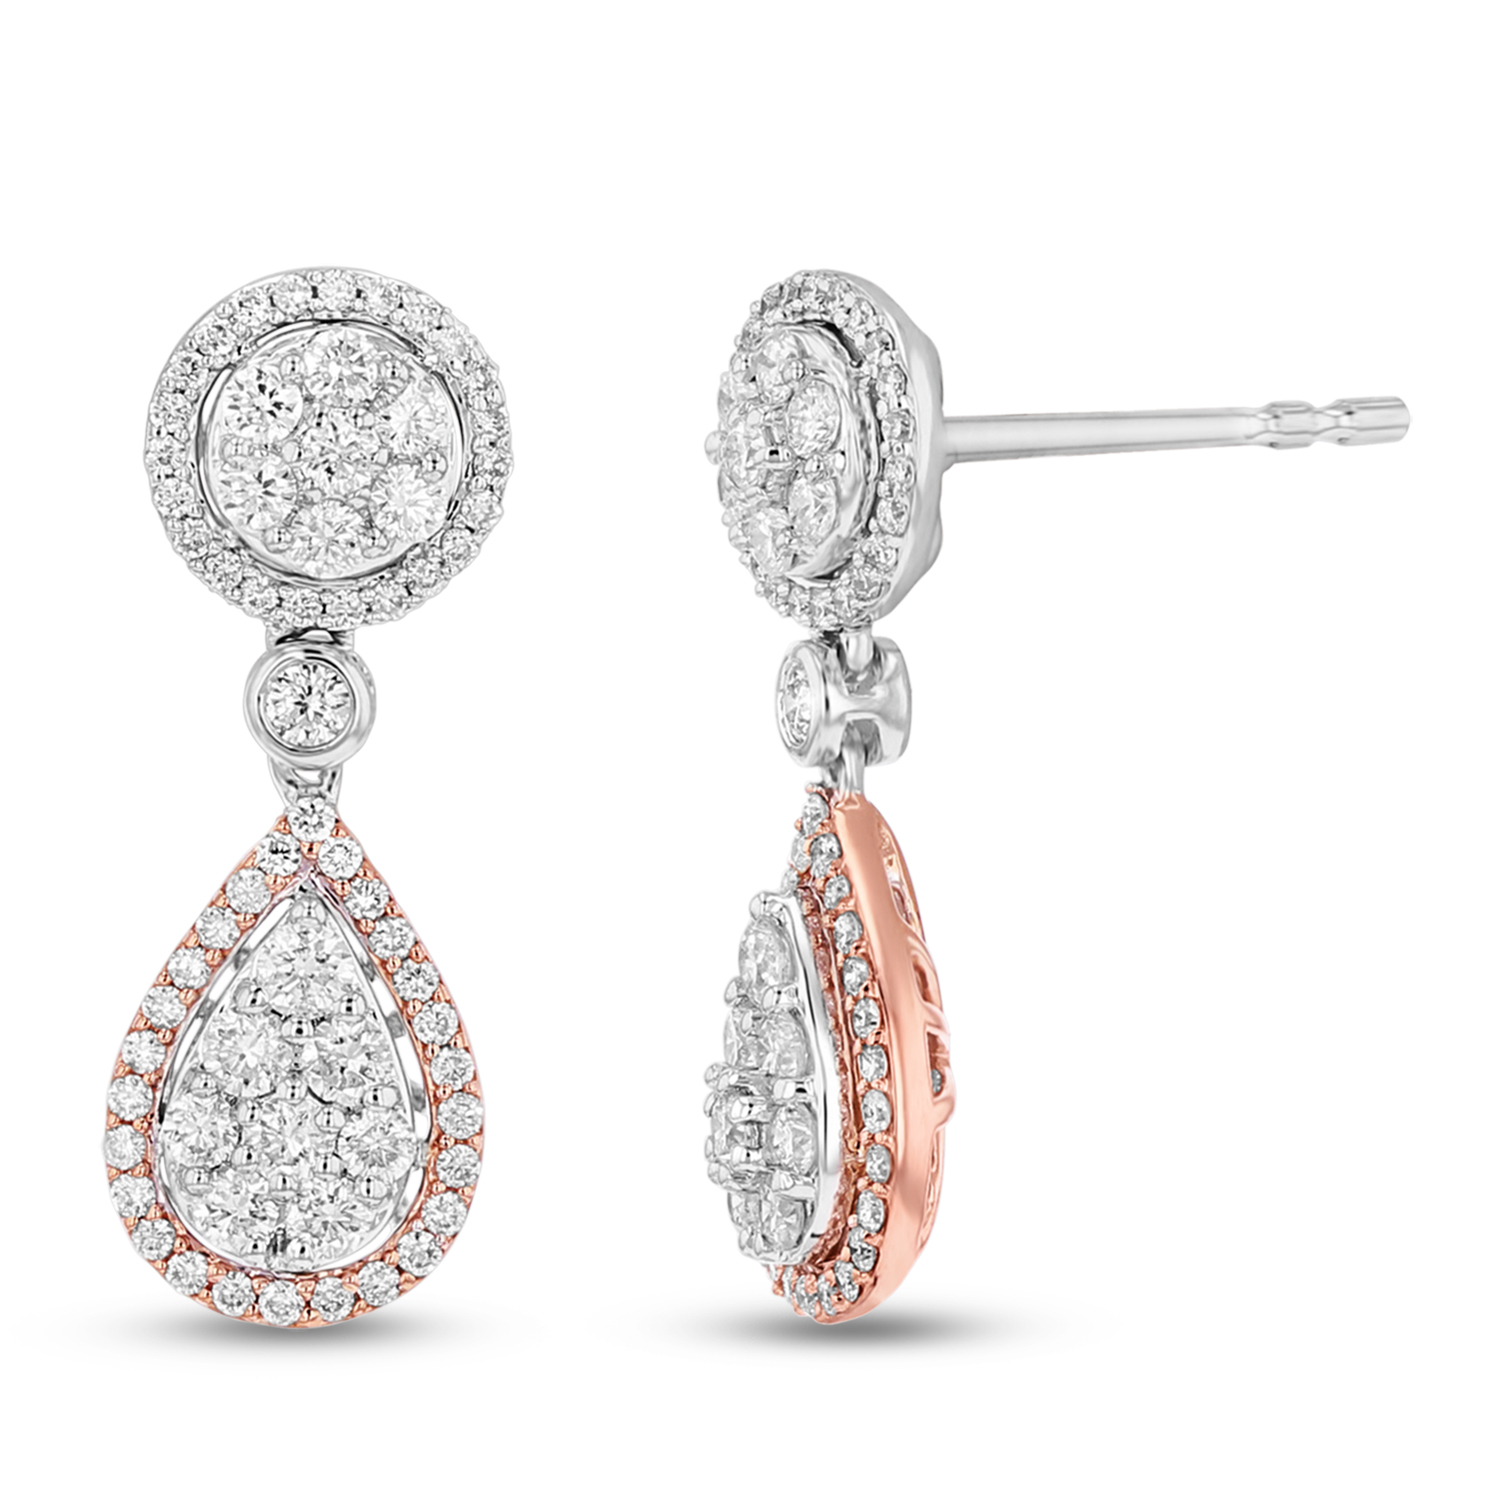 View 0.75ctw Diamond Fashion Earrings in 14k Two Tone Gold